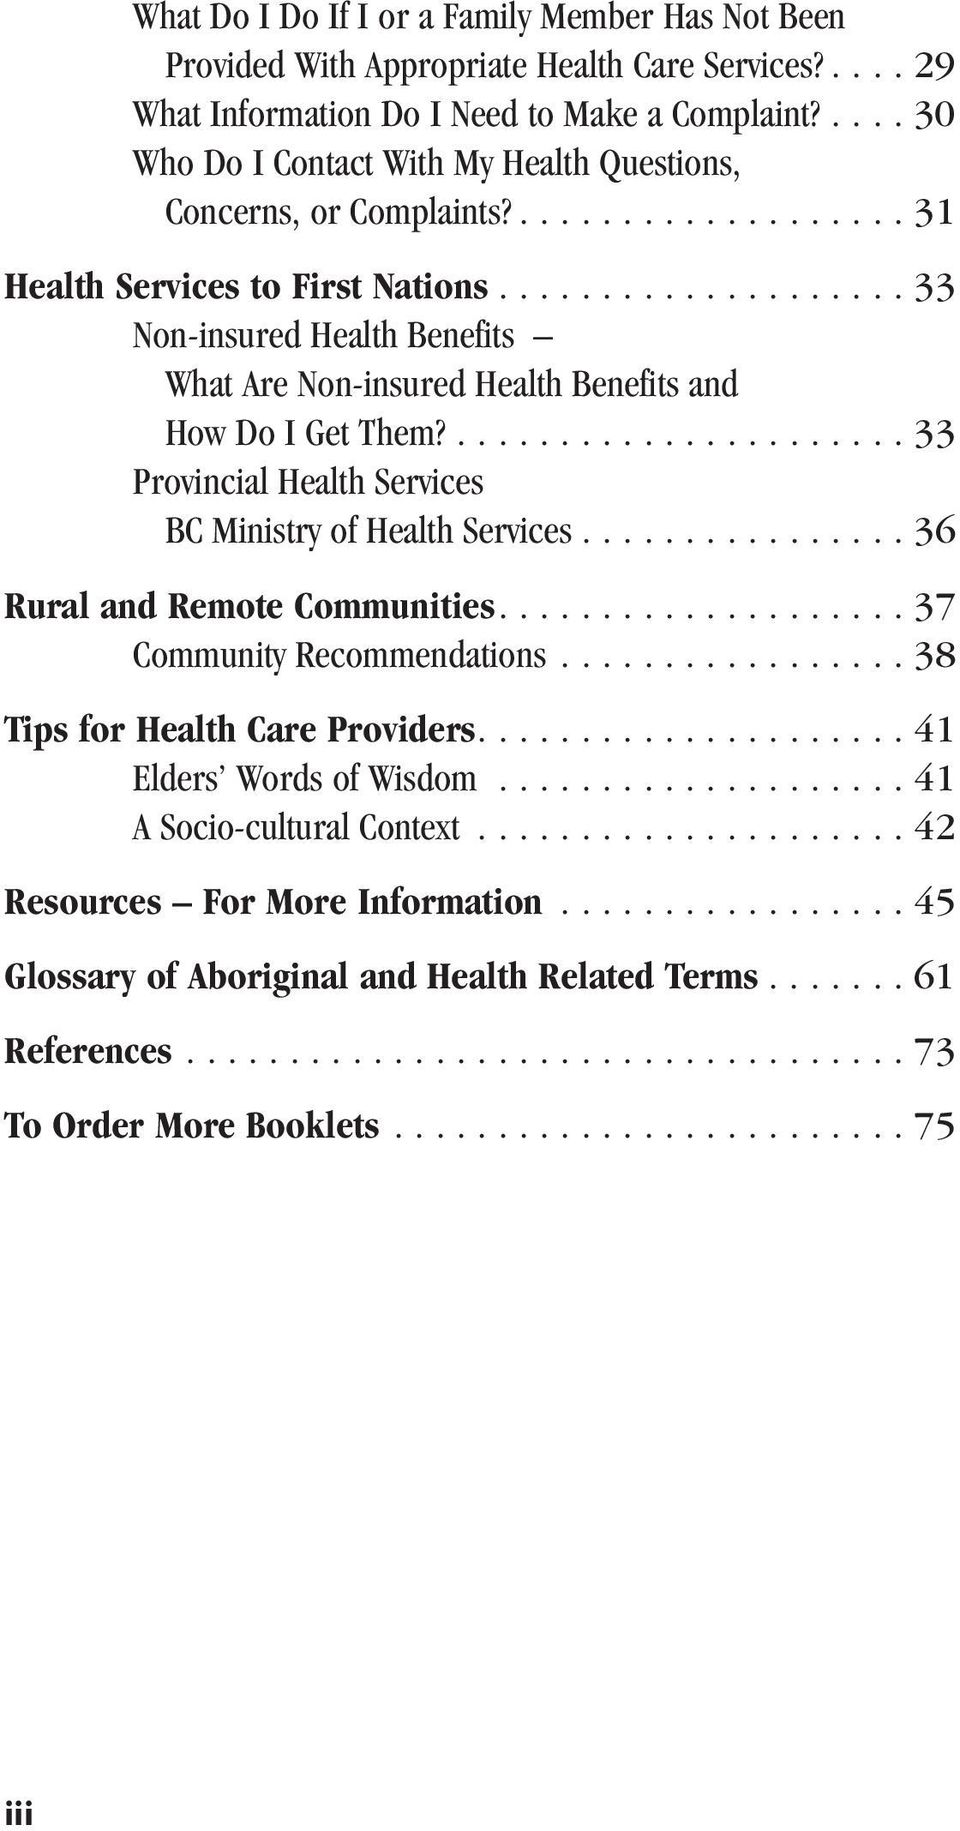 ................... 33 Non-insured Health Benefits What Are Non-insured Health Benefits and How Do I Get Them?...................... 33 Provincial Health Services BC Ministry of Health Services.